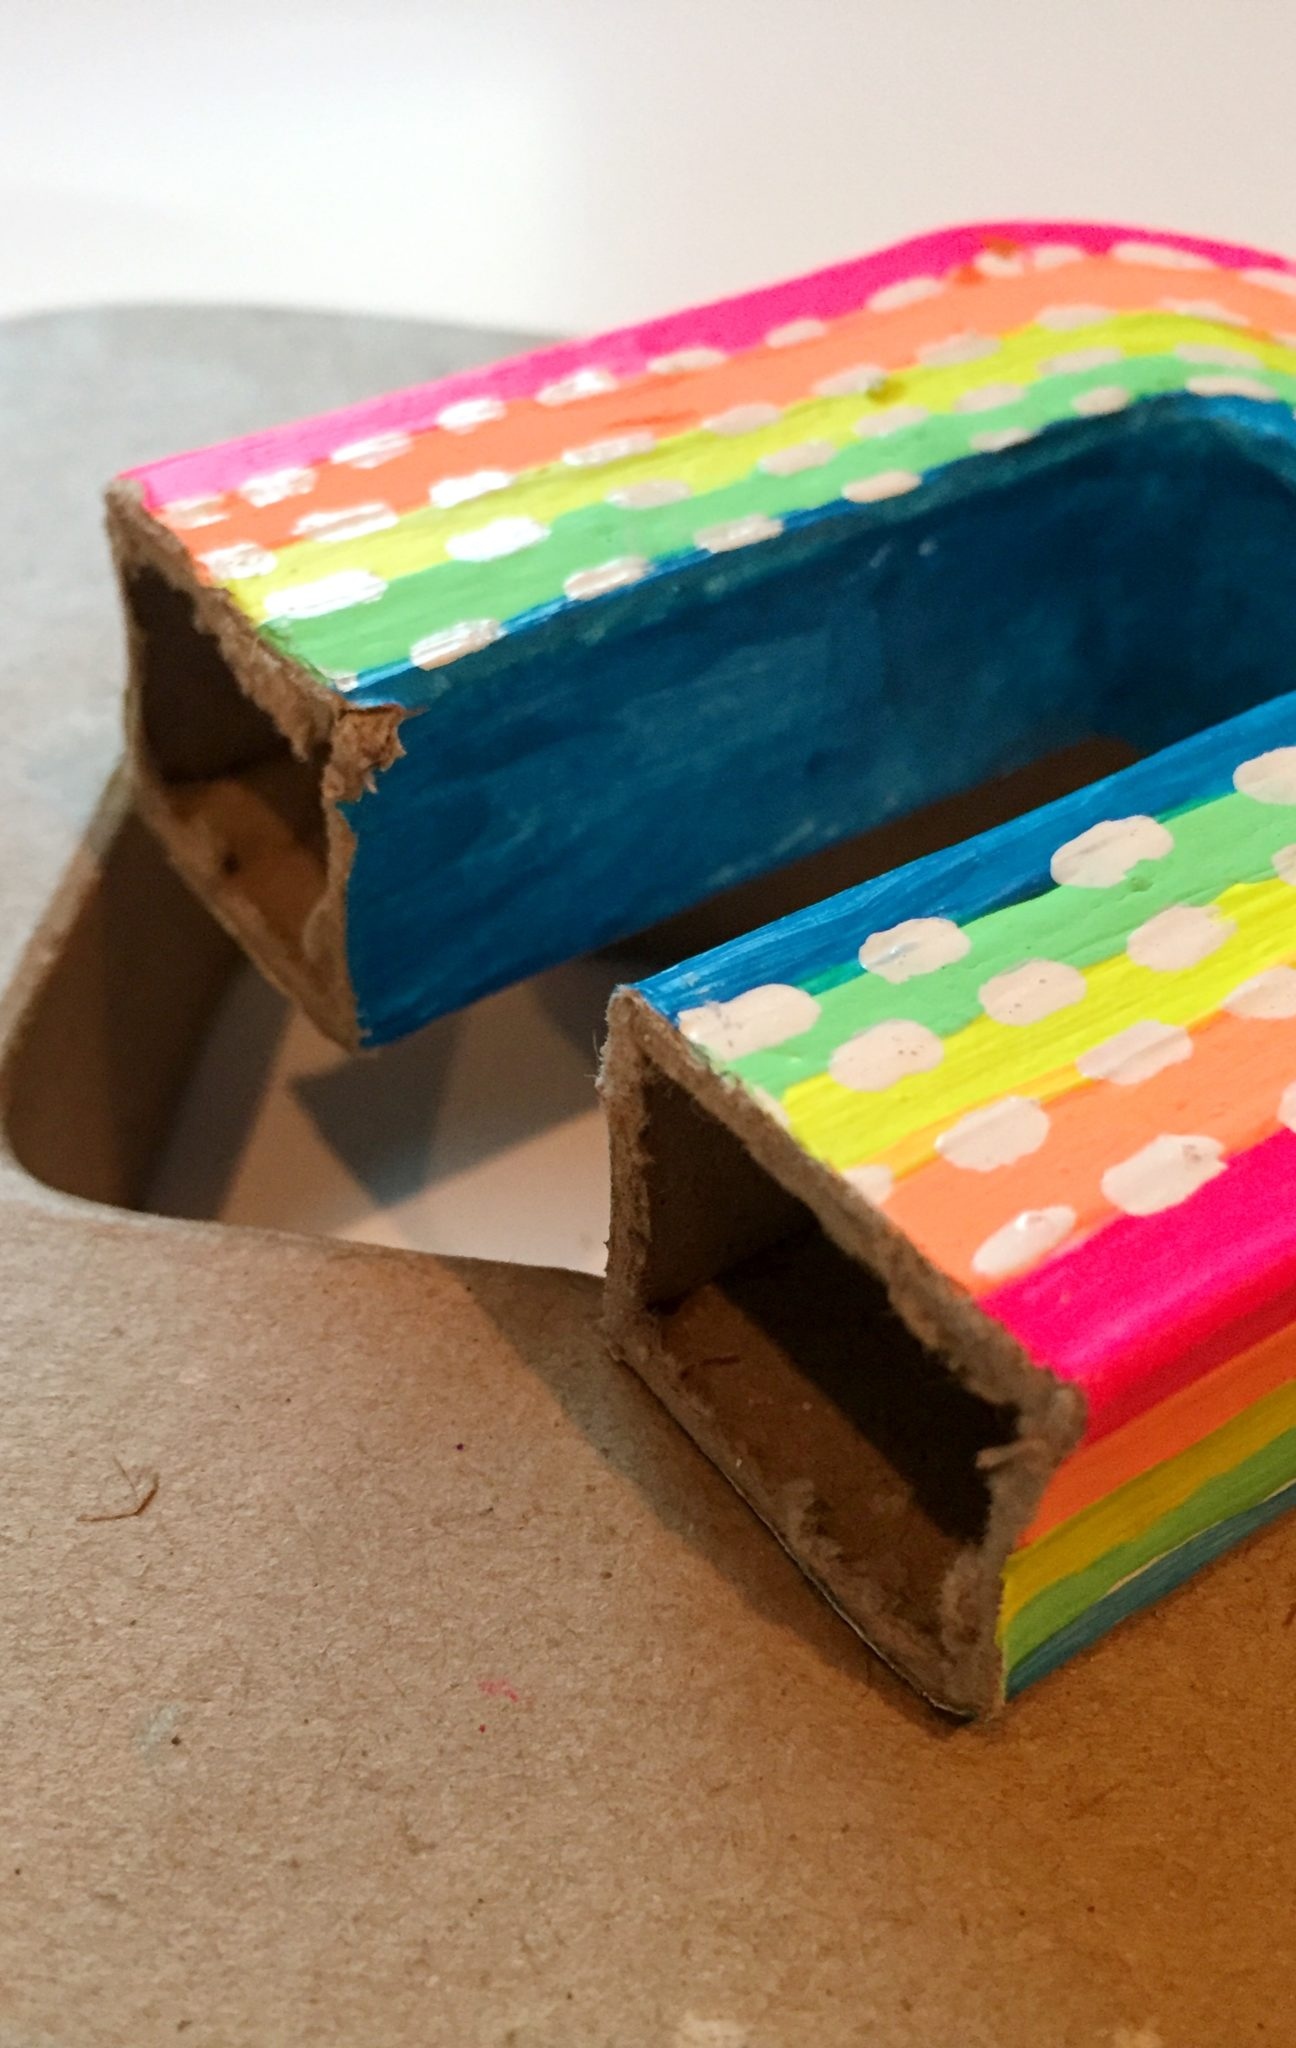 How to make cardboard letters into rainbow vases by Jennifer Perkins